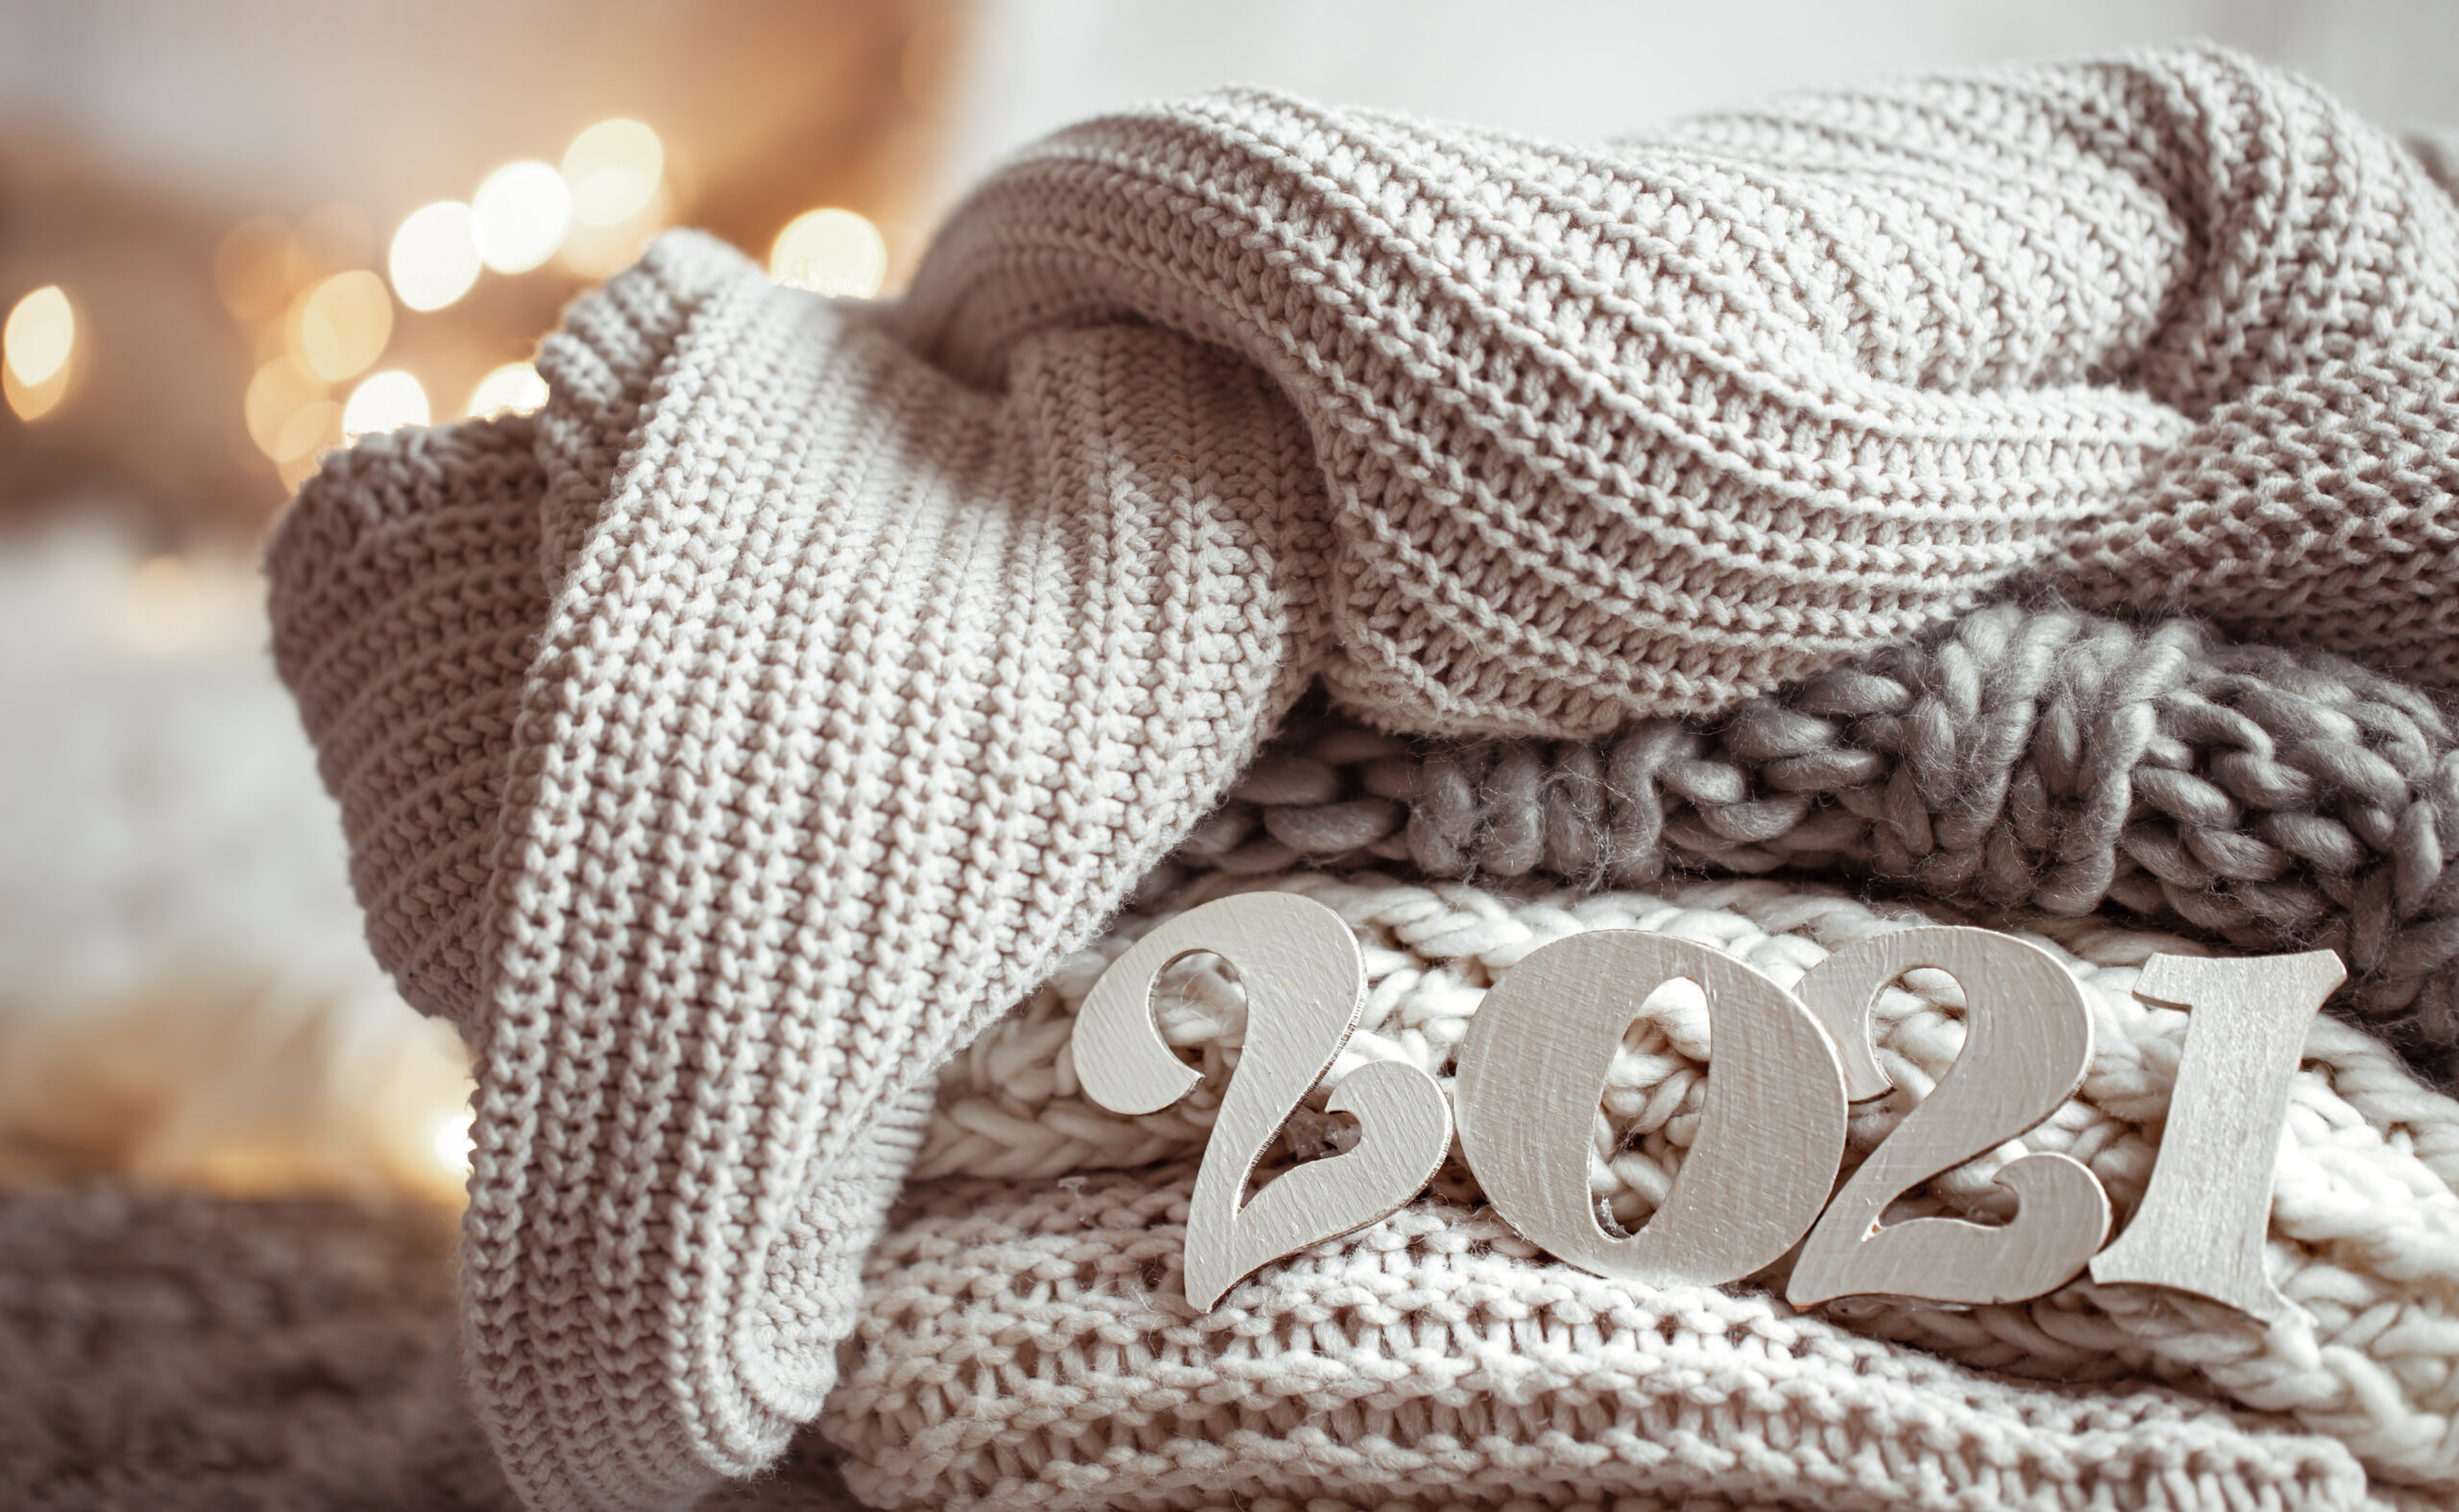 Cozy new year composition with knitted pastel colored wooden numbers 2021 close up.